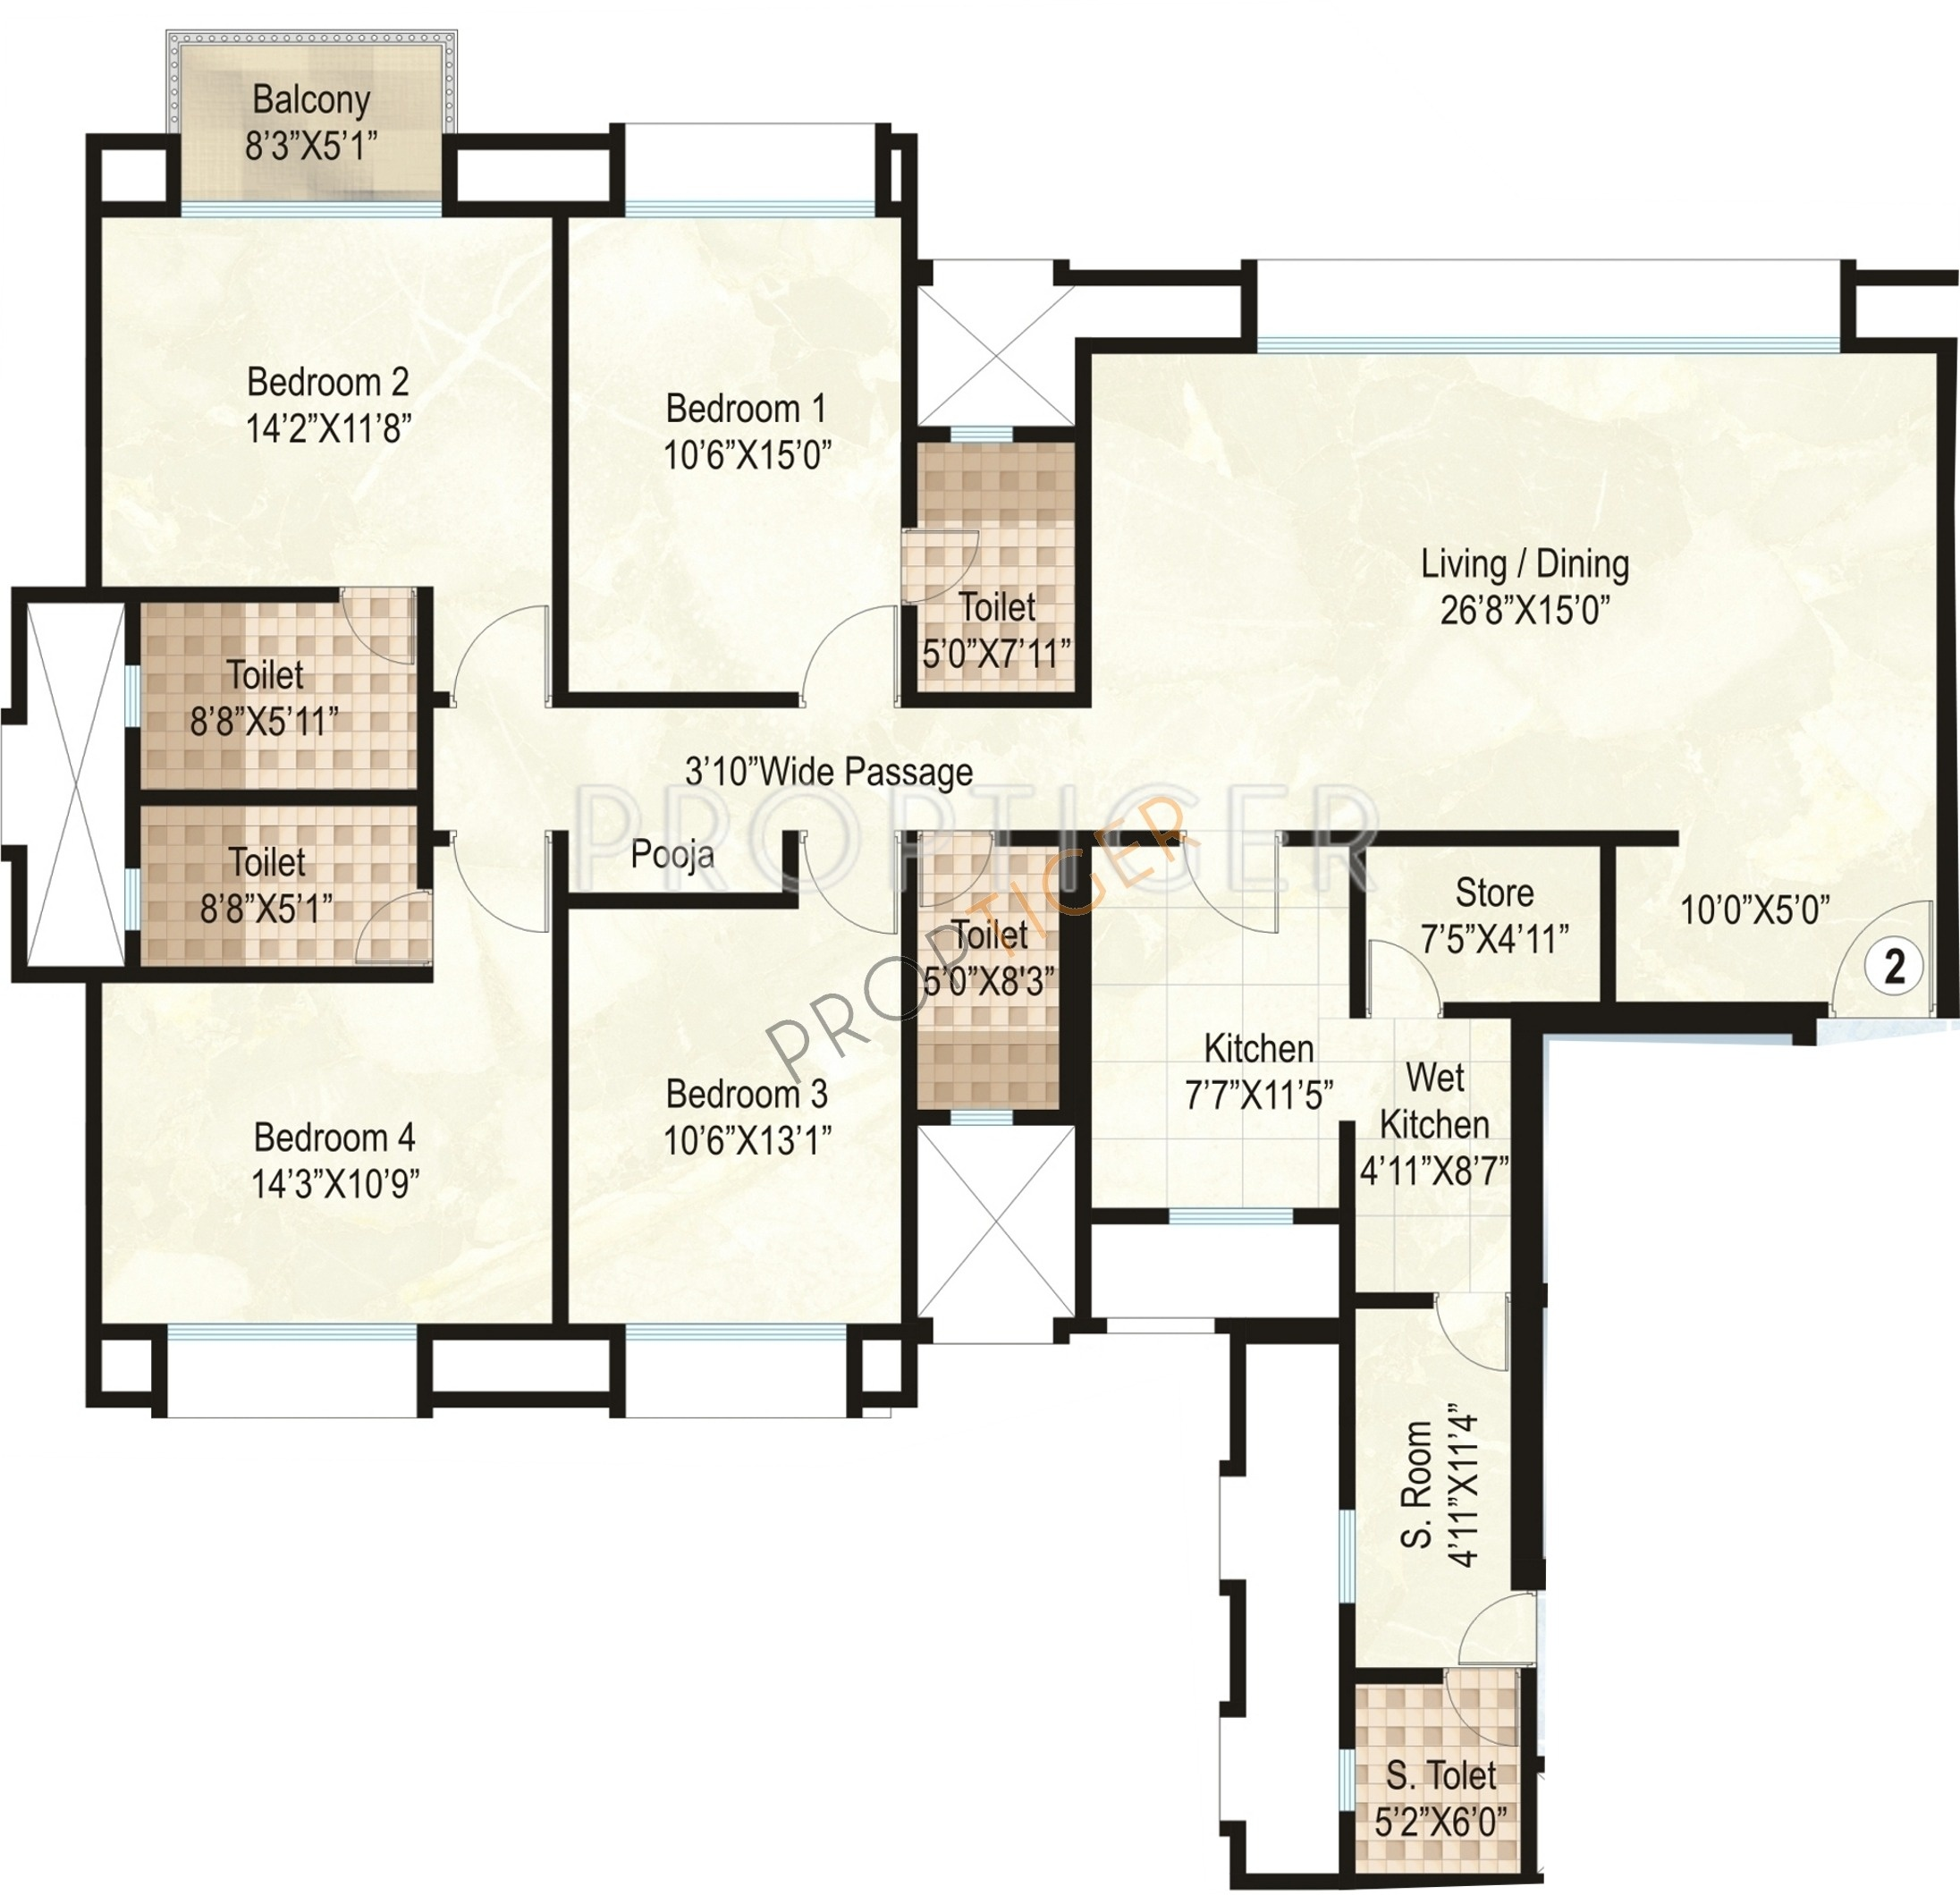 15000 sq ft house plans 28 images 15000 sq ft house for 15000 square foot house plans